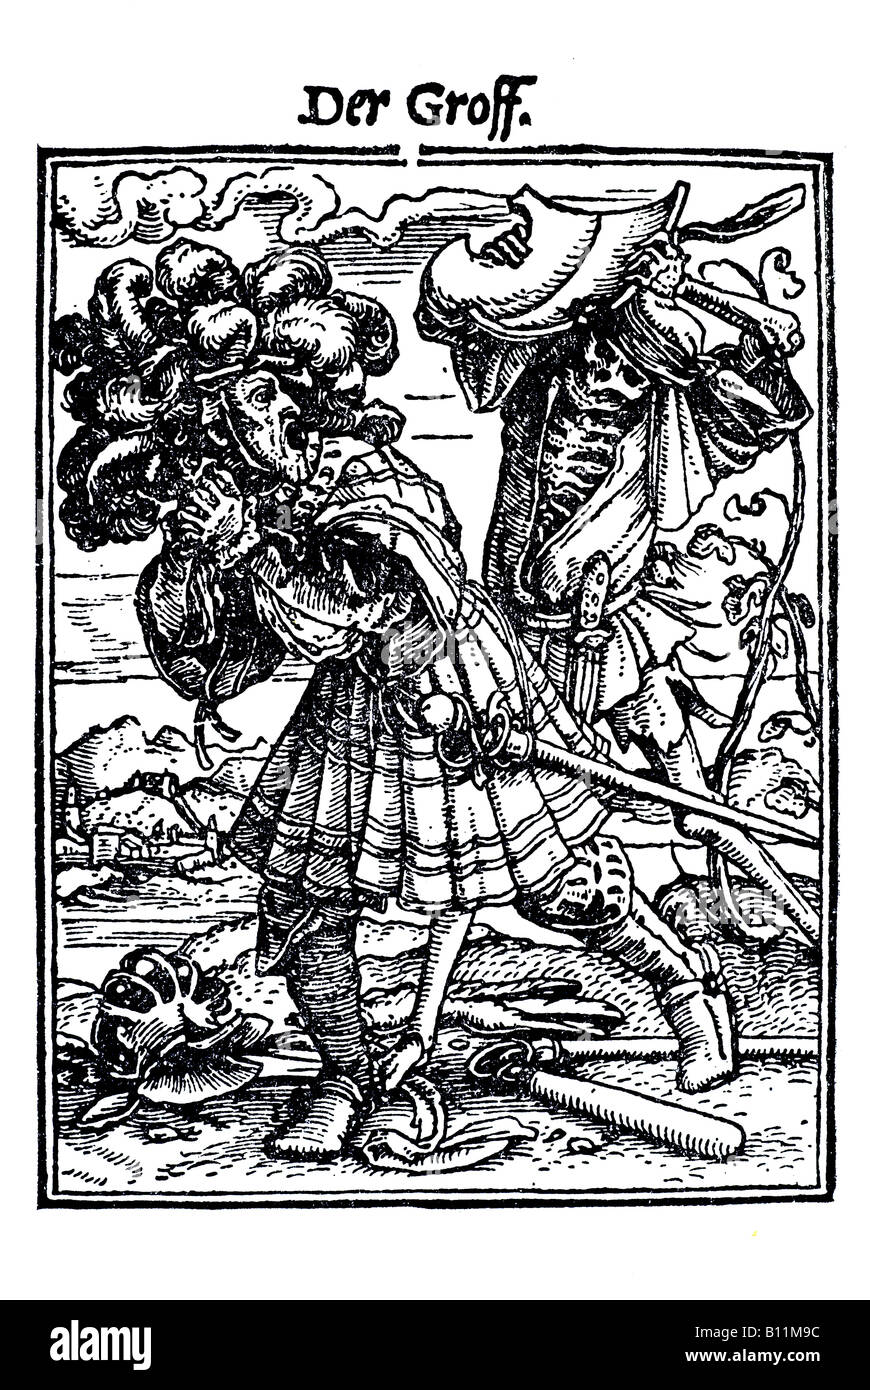 The count, earl, Hans Holbein the younger, Danse Macabre, 1538, Germany - Stock Image